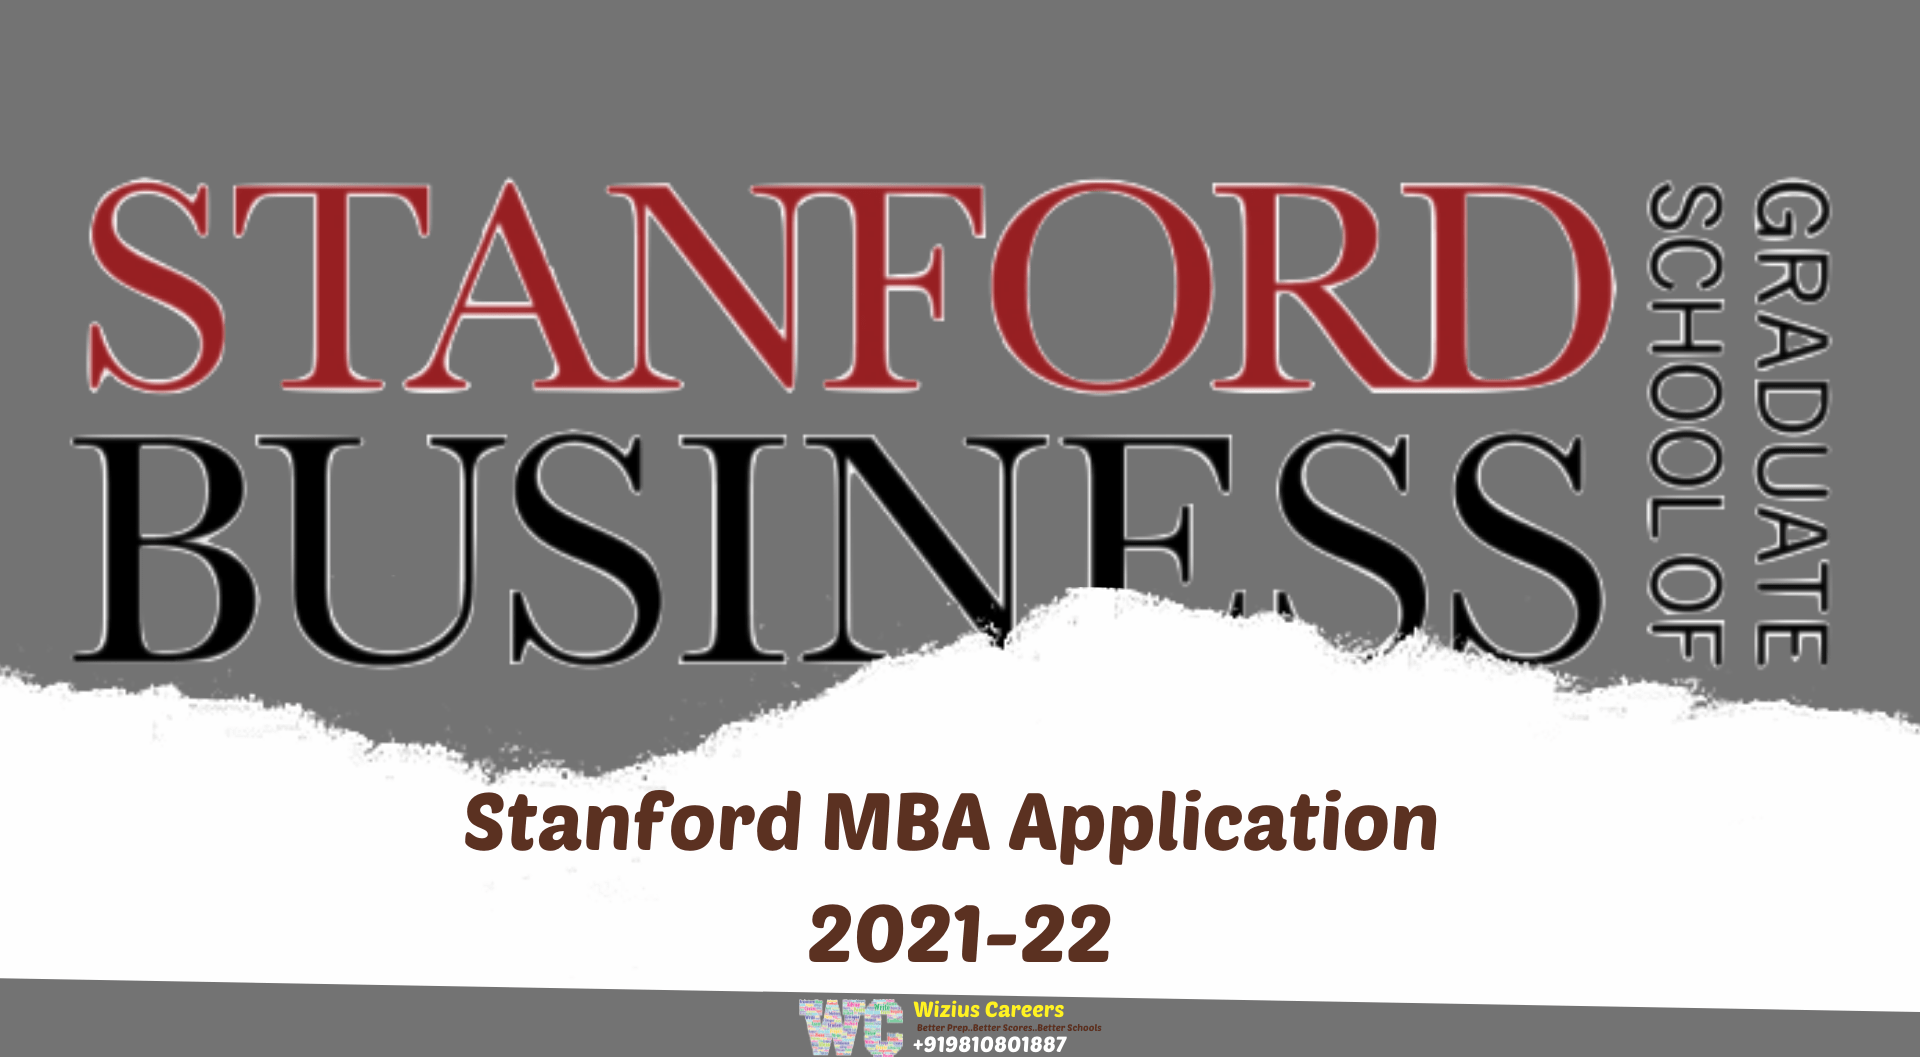 Stanford MBA Application 2021-22